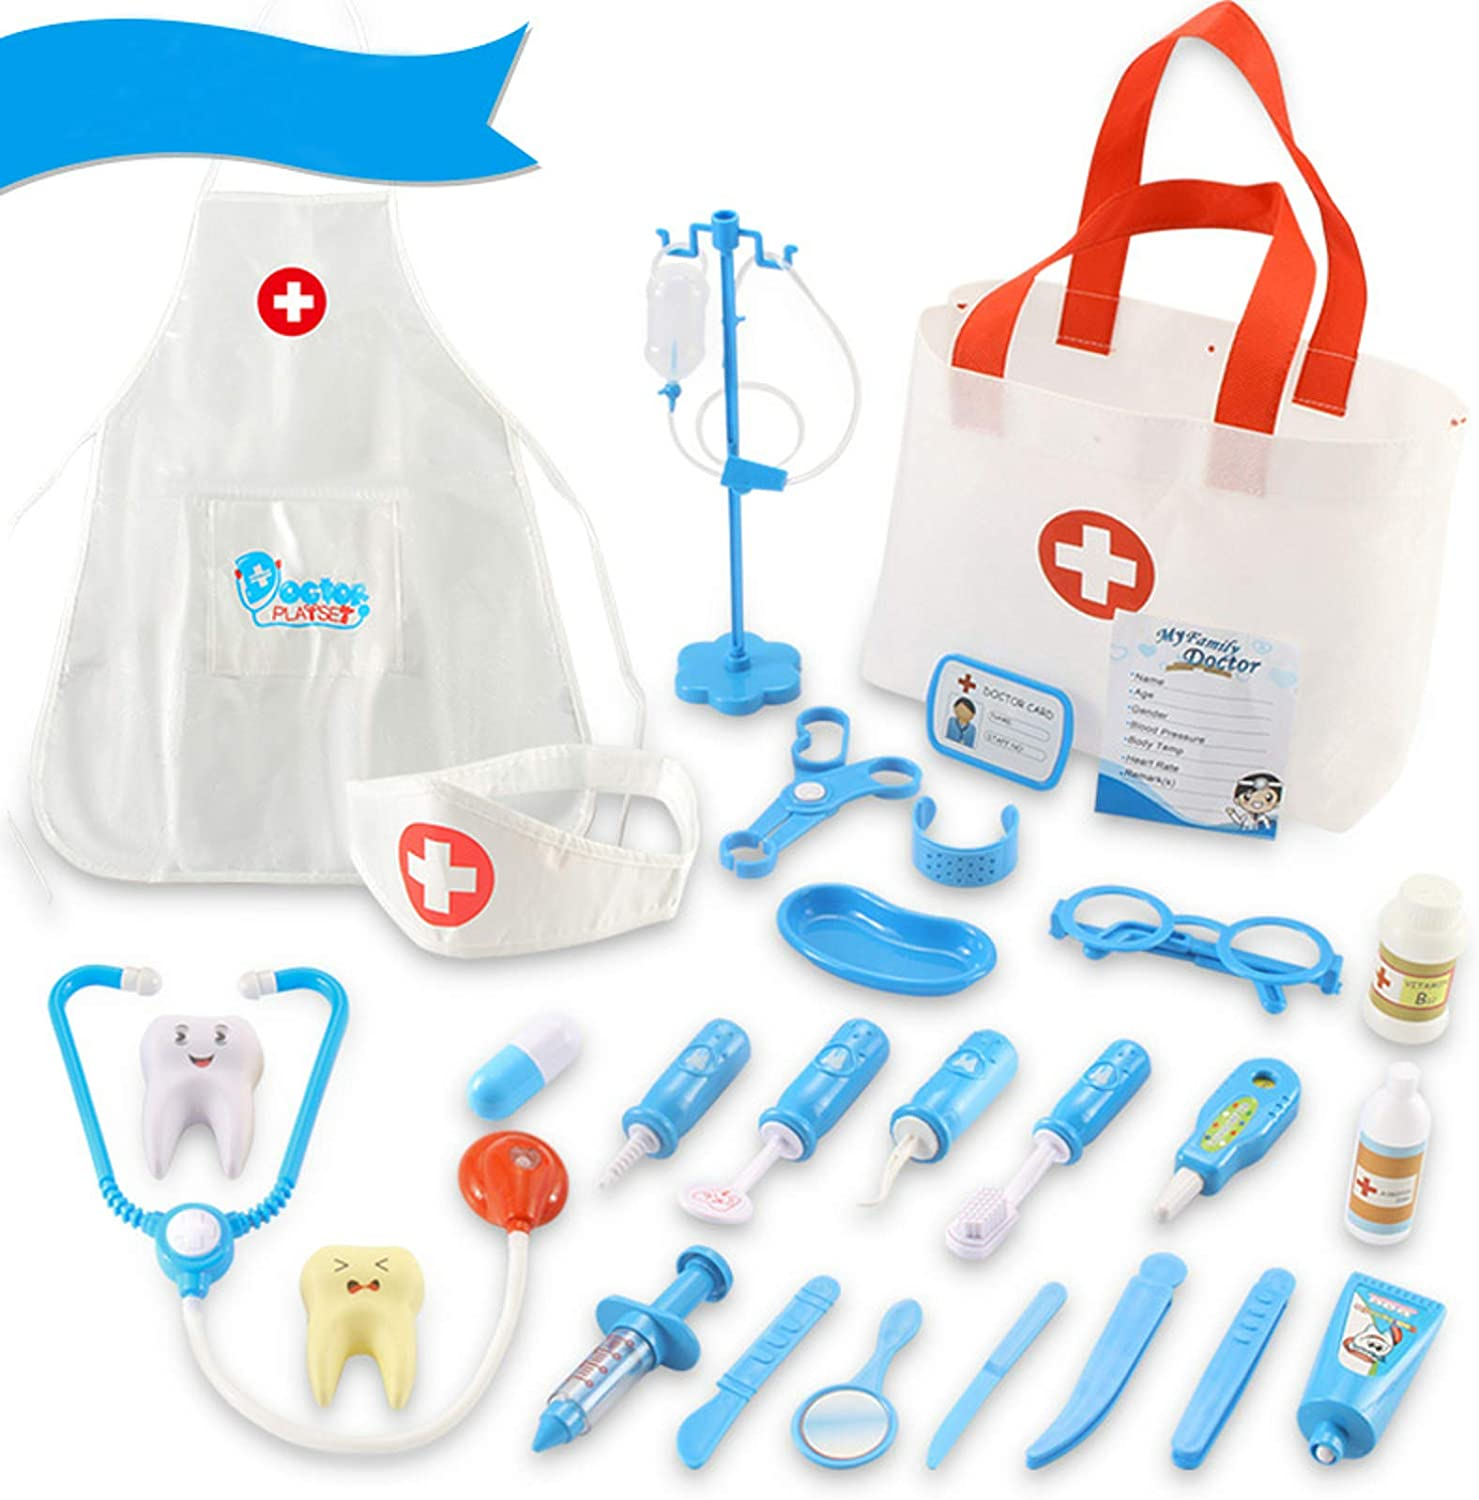 Amazon Promo Code for Doctor Kit for Kids